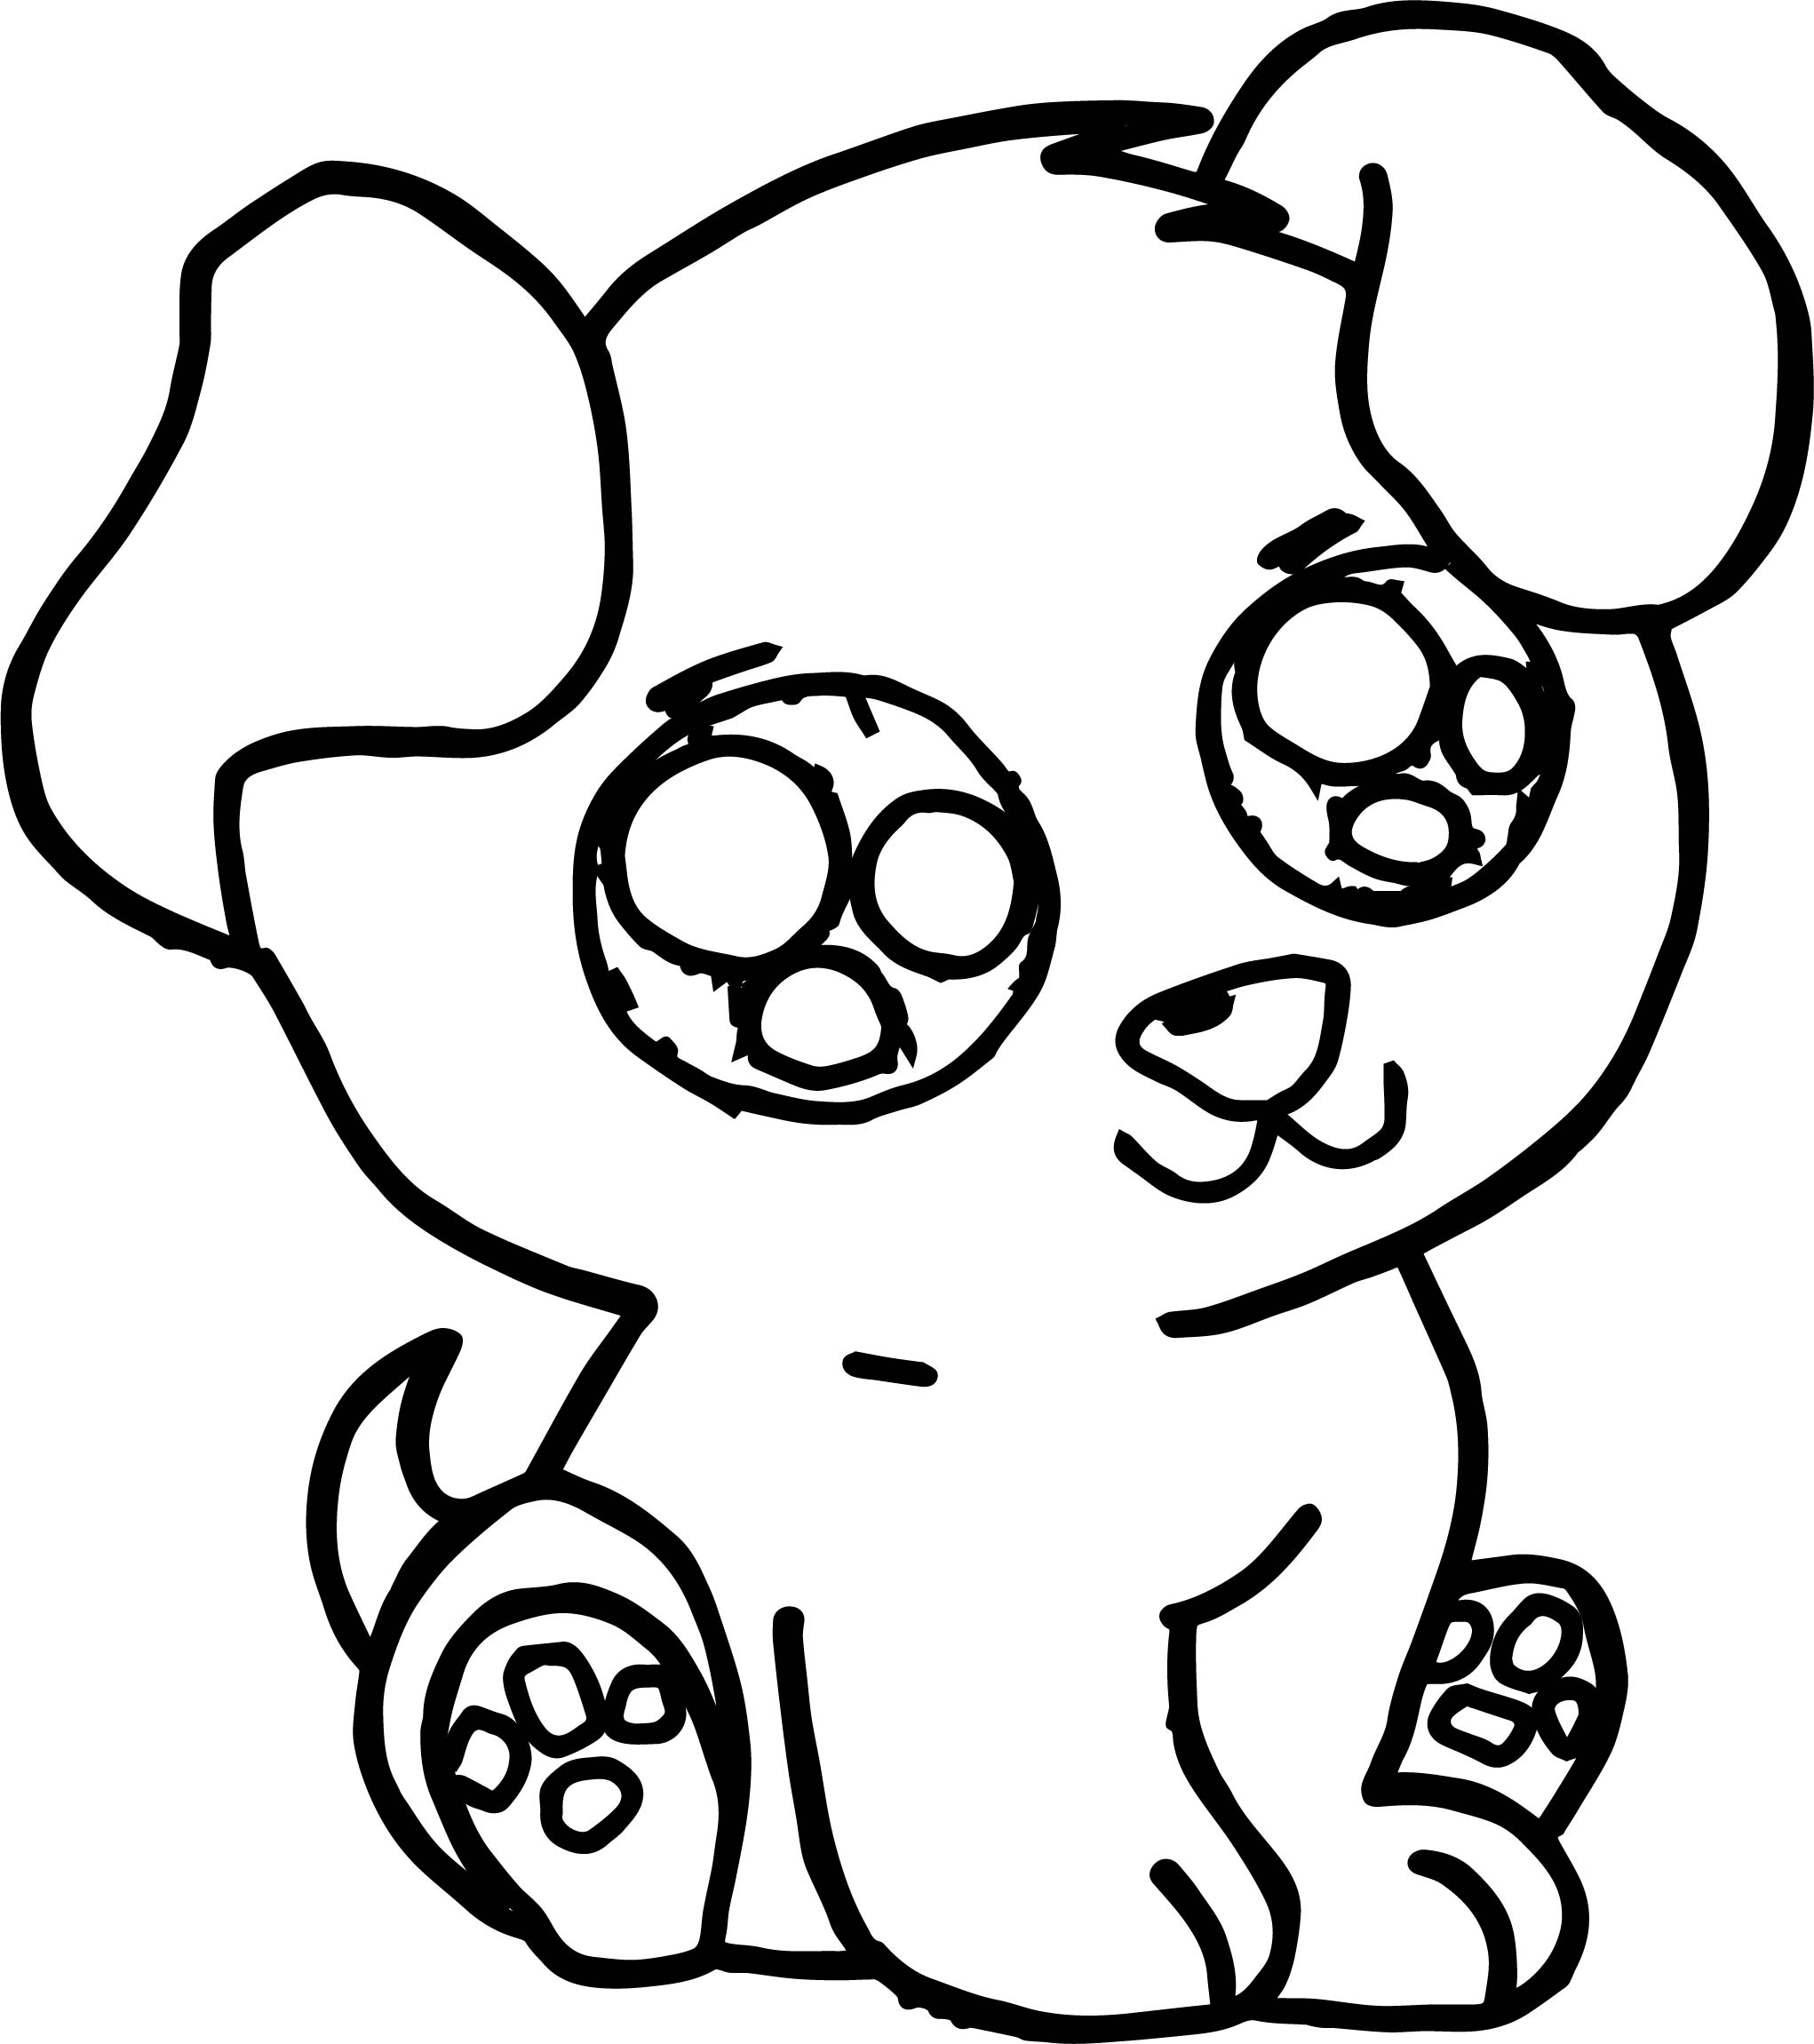 Cute puppy free images puppy dog coloring page for Coloring pages of dogs